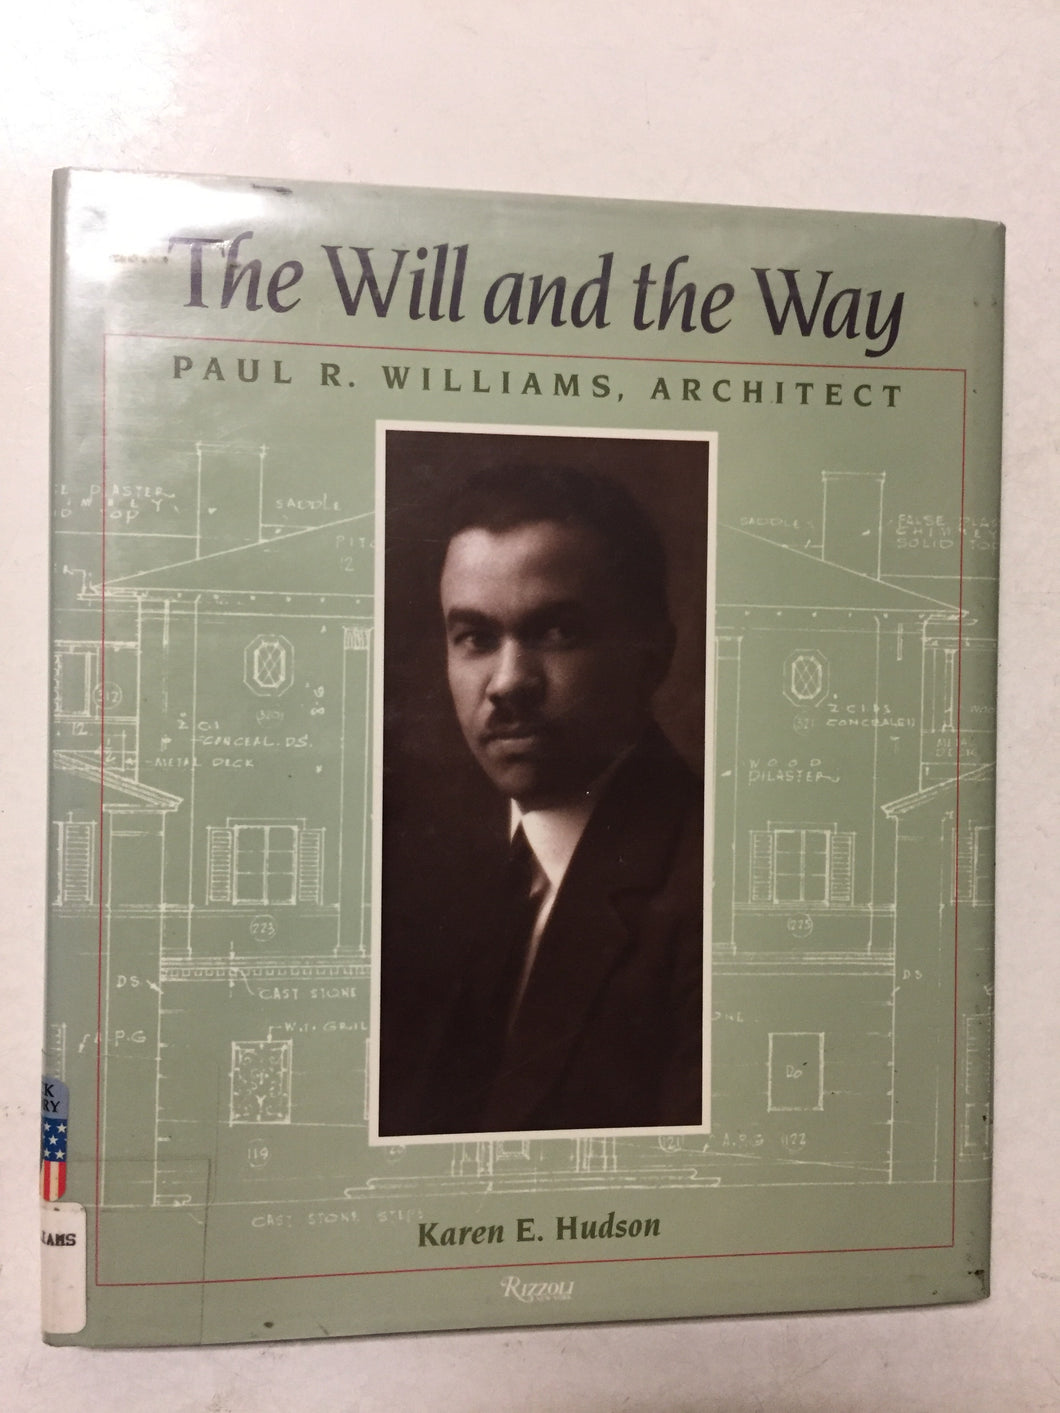 The Will and the Way Paul R. Williams, Architect - Slickcatbooks